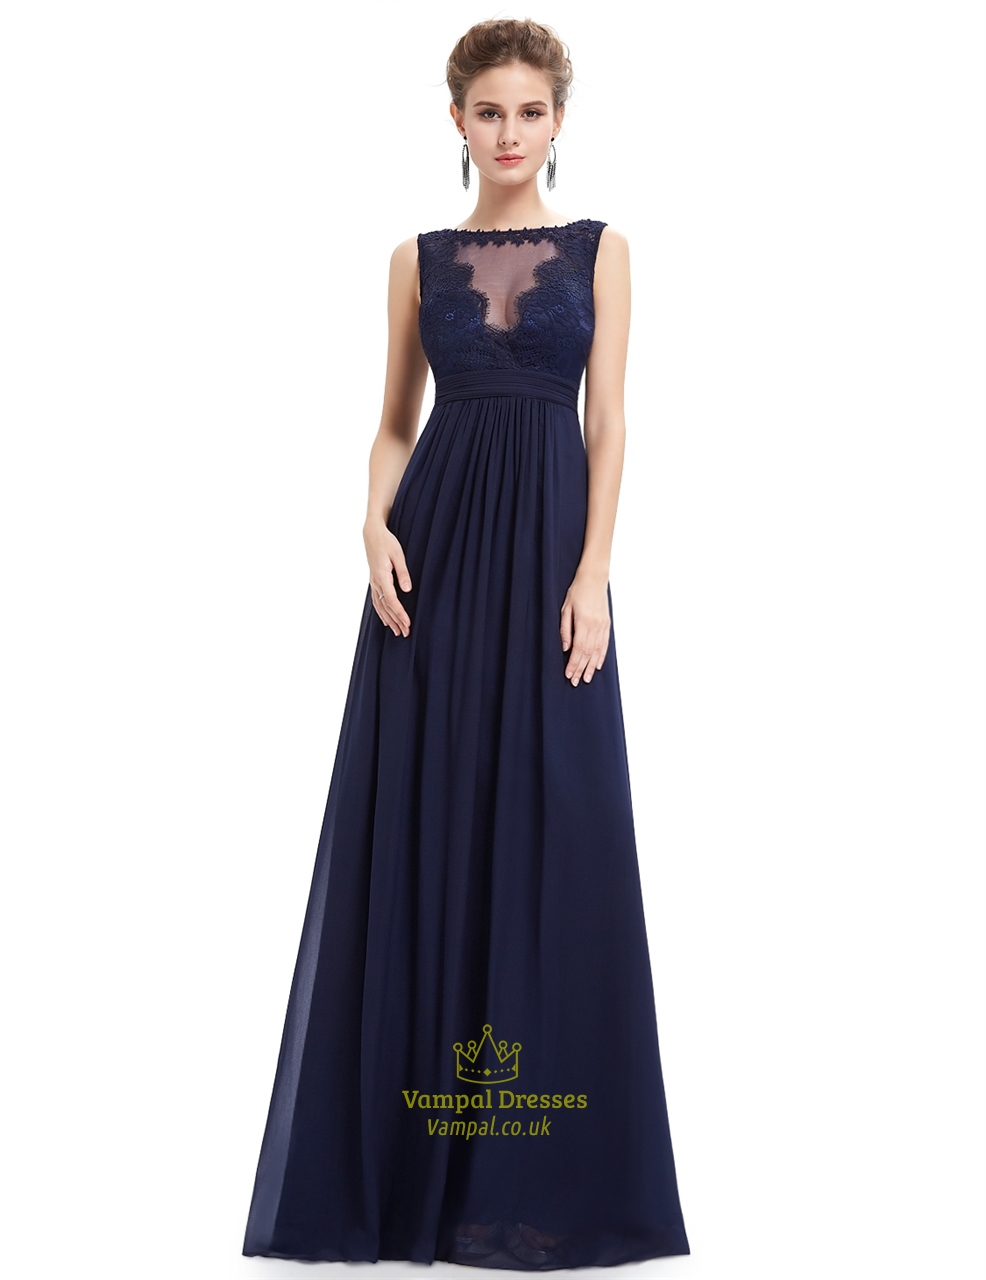 Chiffon Gown With Beaded Lace Applique | Vampal Dresses